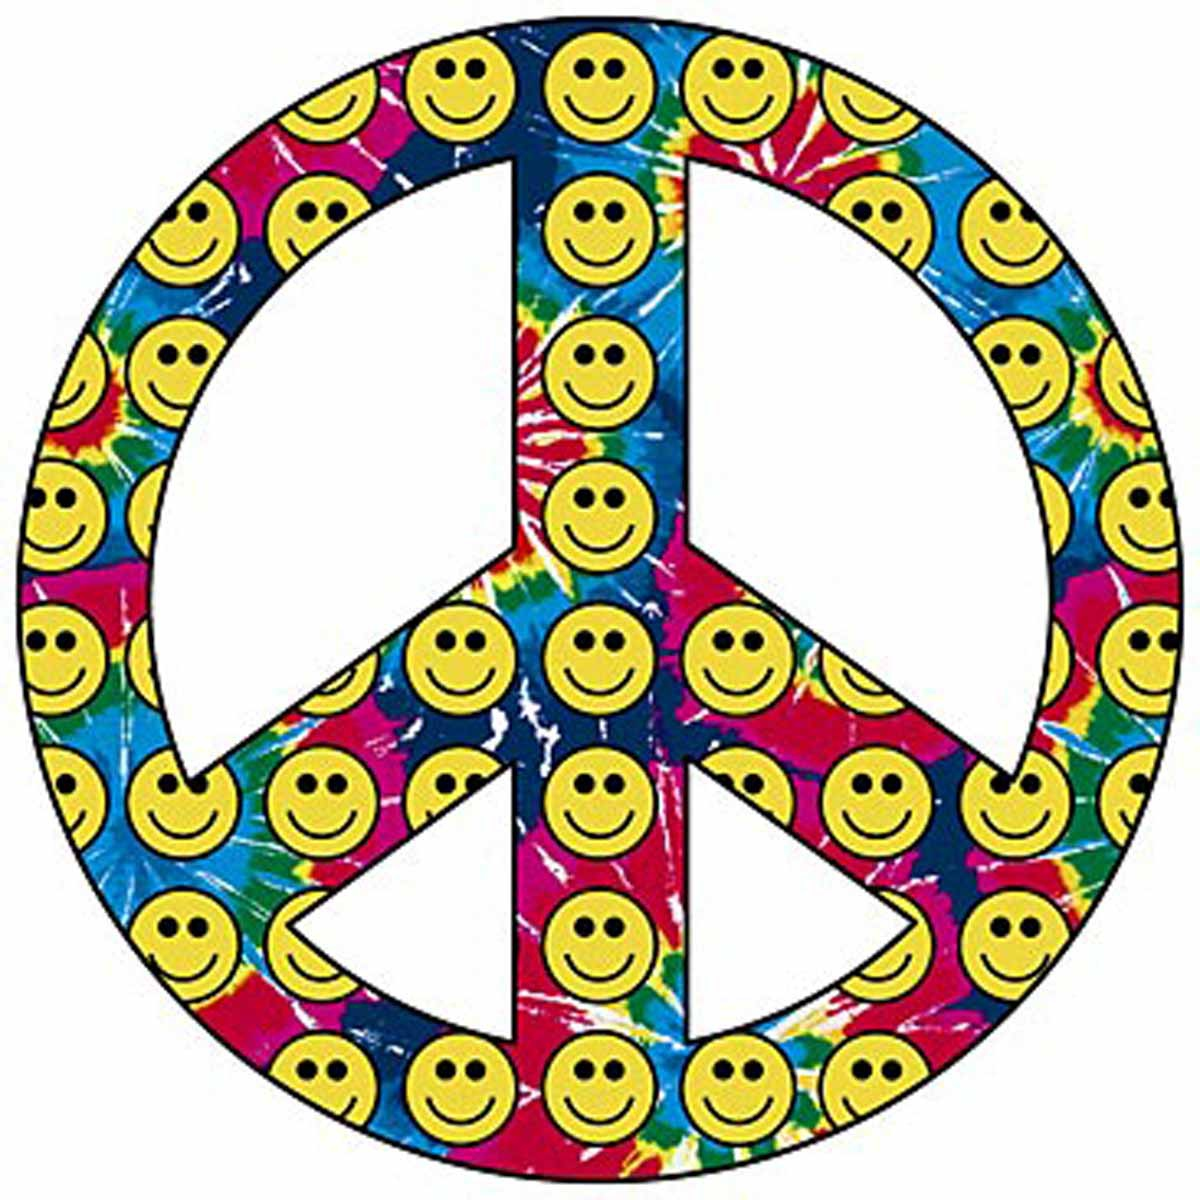 T-shirt femme manches courtes - PEACE and LOVE - Smiley - 10294